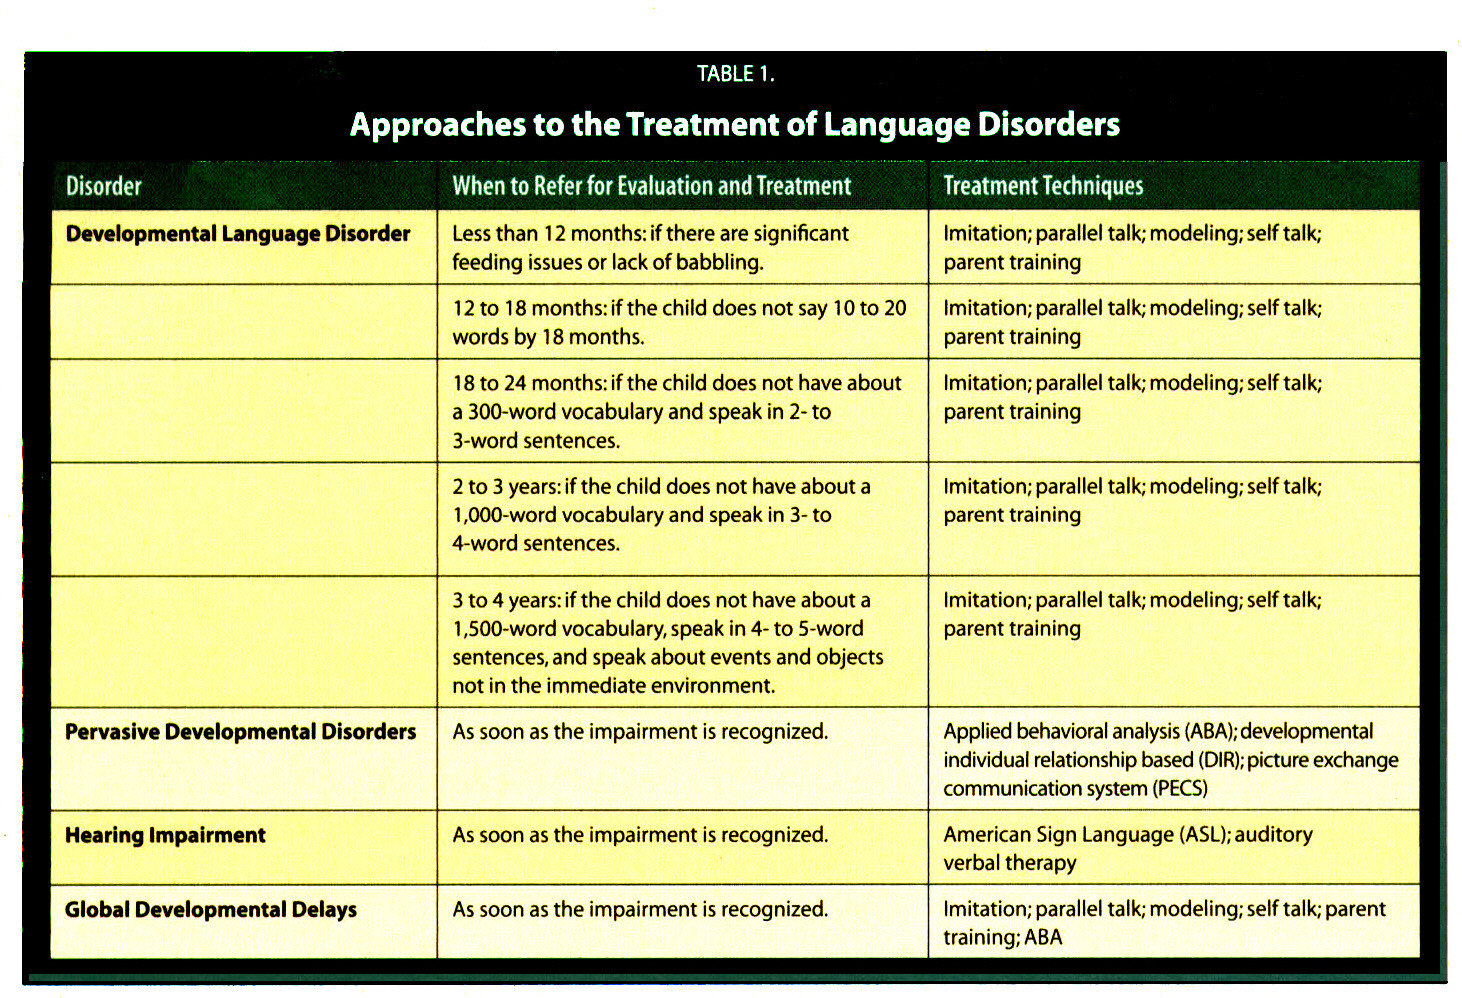 TABLE 1.Approaches to the Treatment of Language Disorders